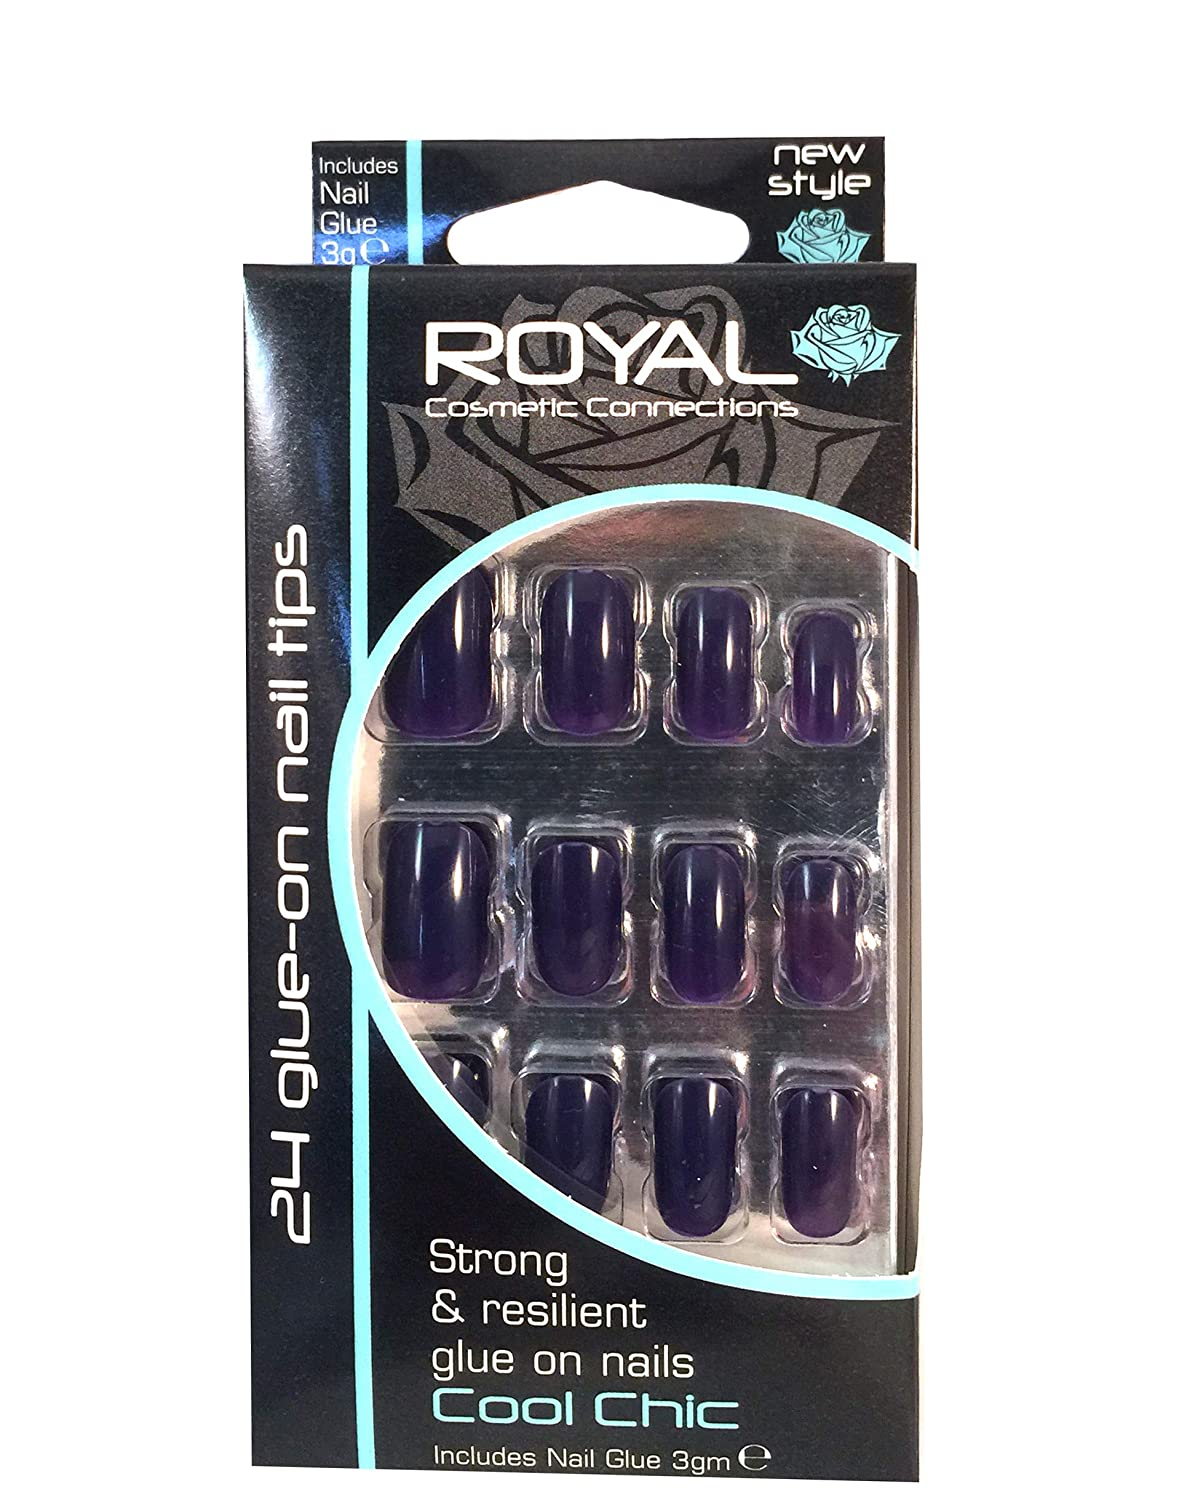 Royal 24 Glue-On Strong & Resilient Nail Tips -Cool Chic: Amazon.es: Belleza